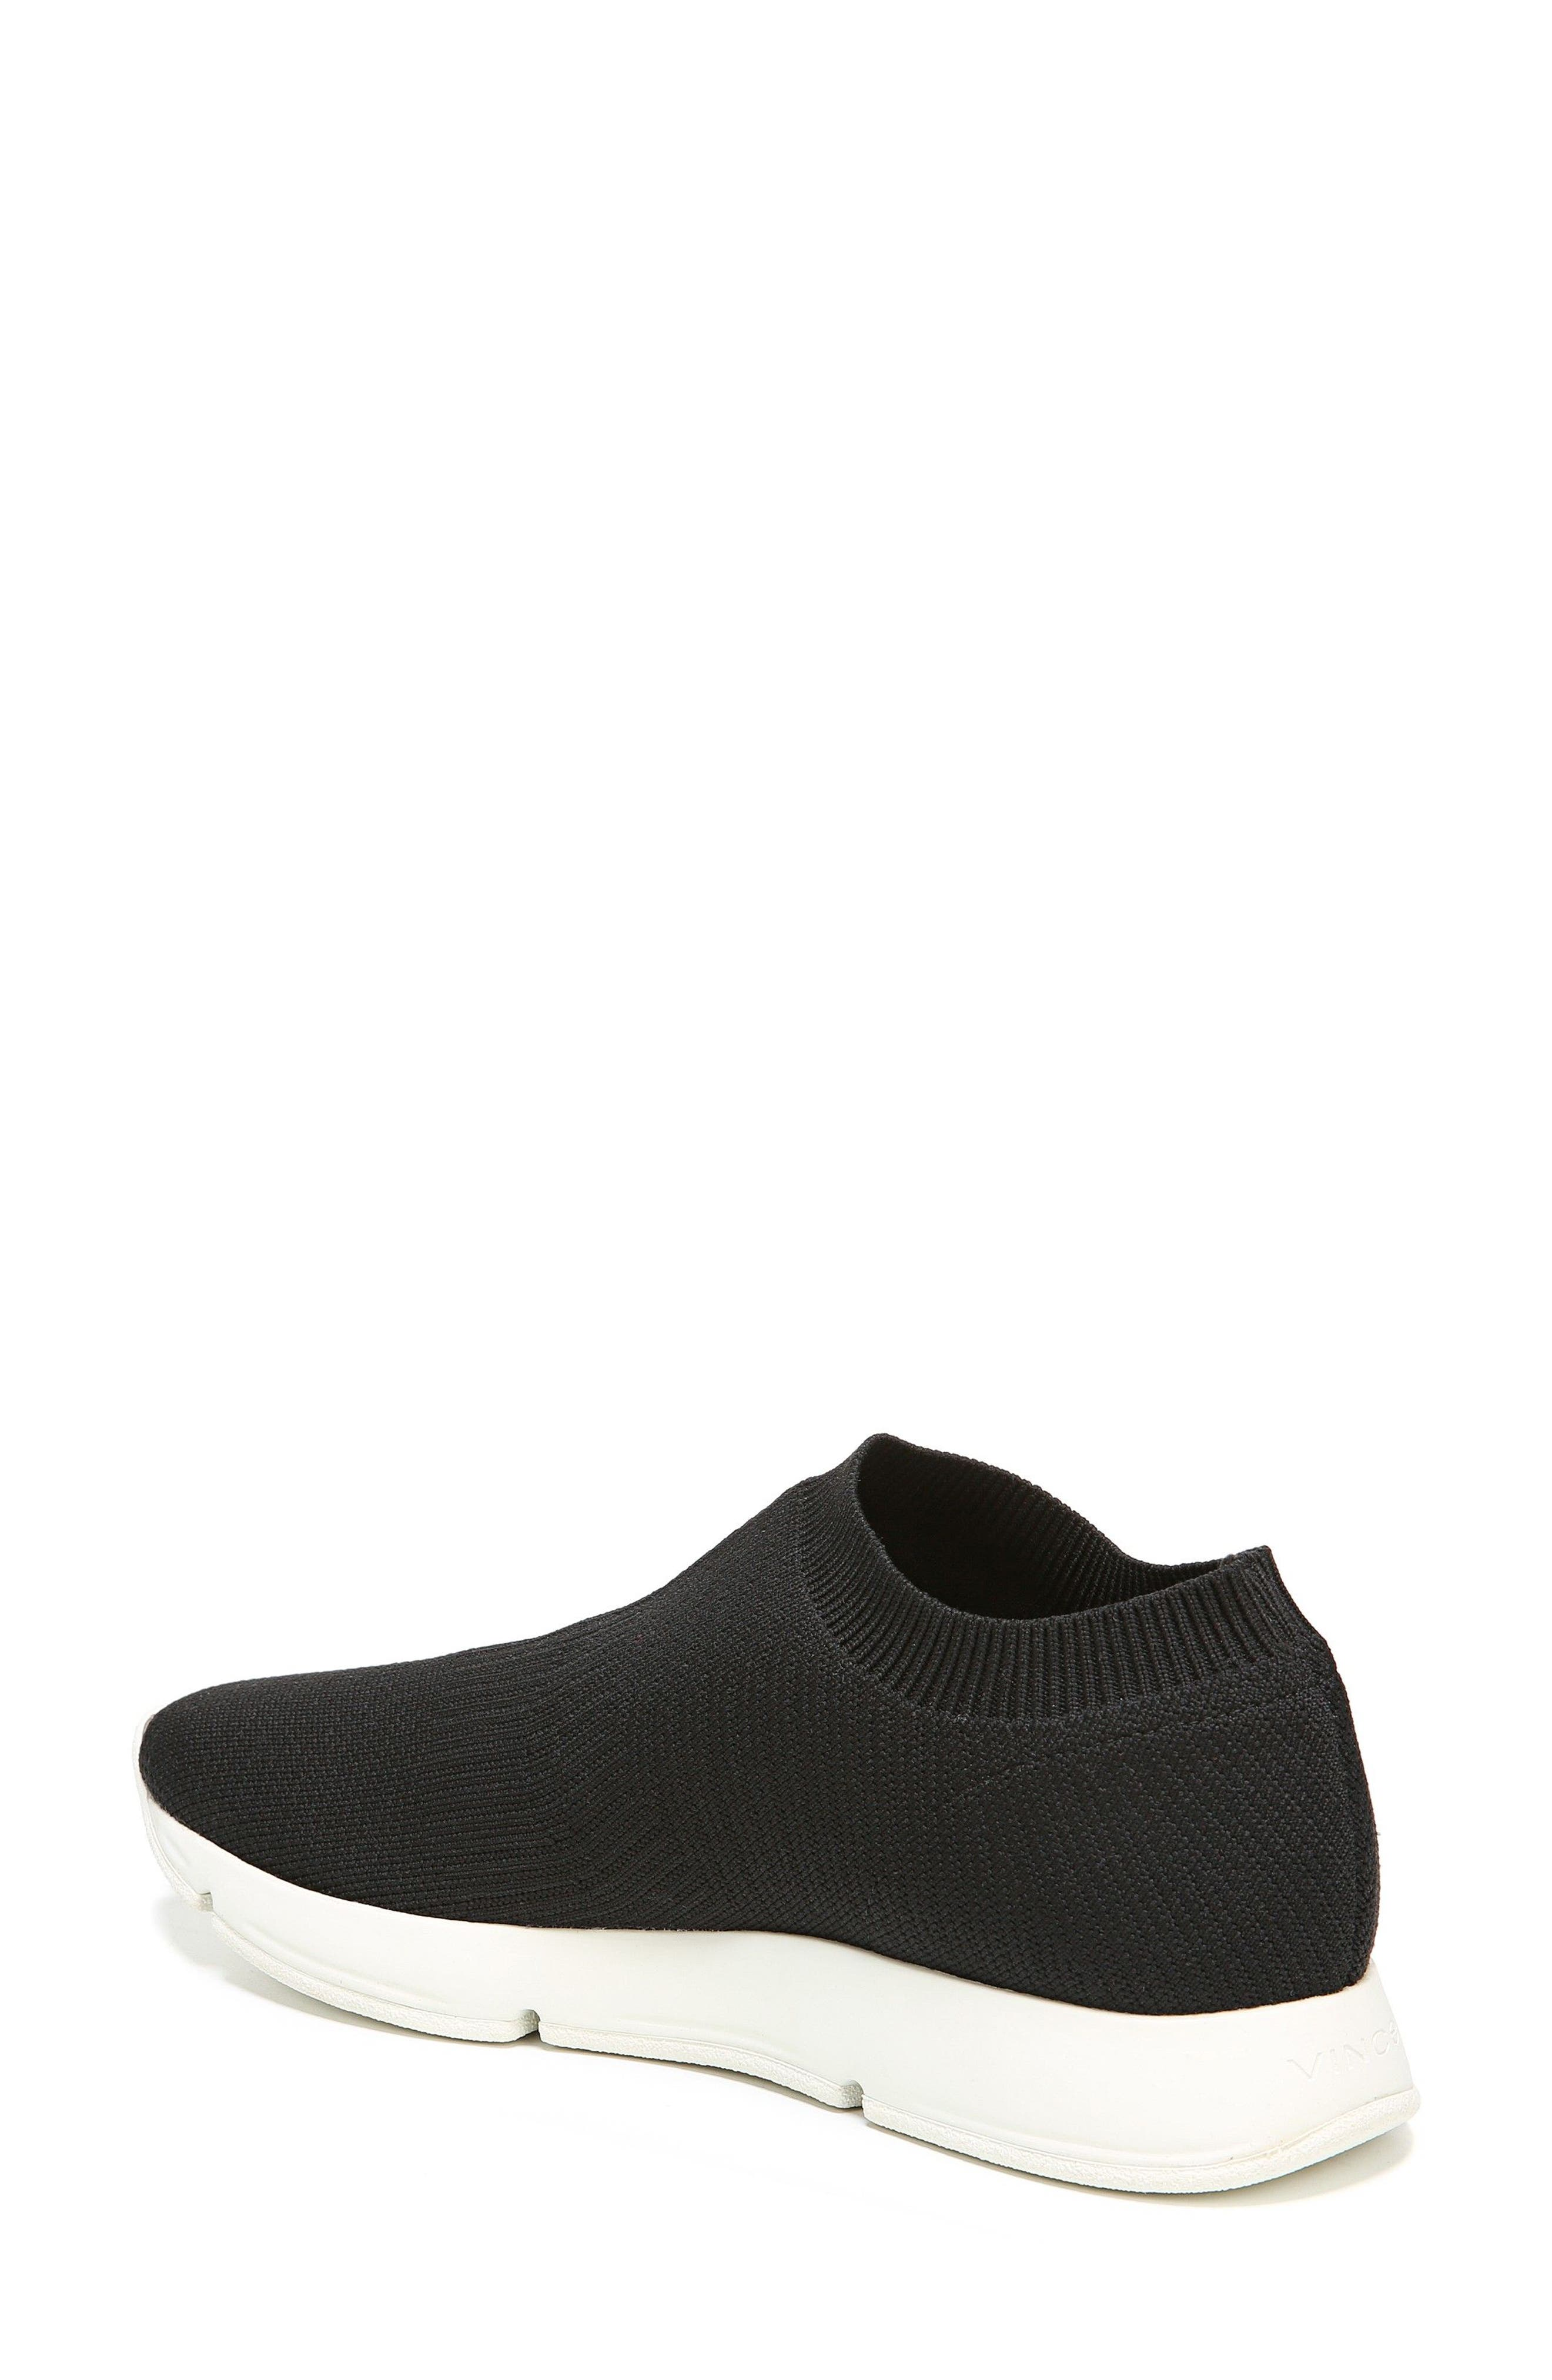 Theroux Slip-On Knit Sneaker,                             Alternate thumbnail 4, color,